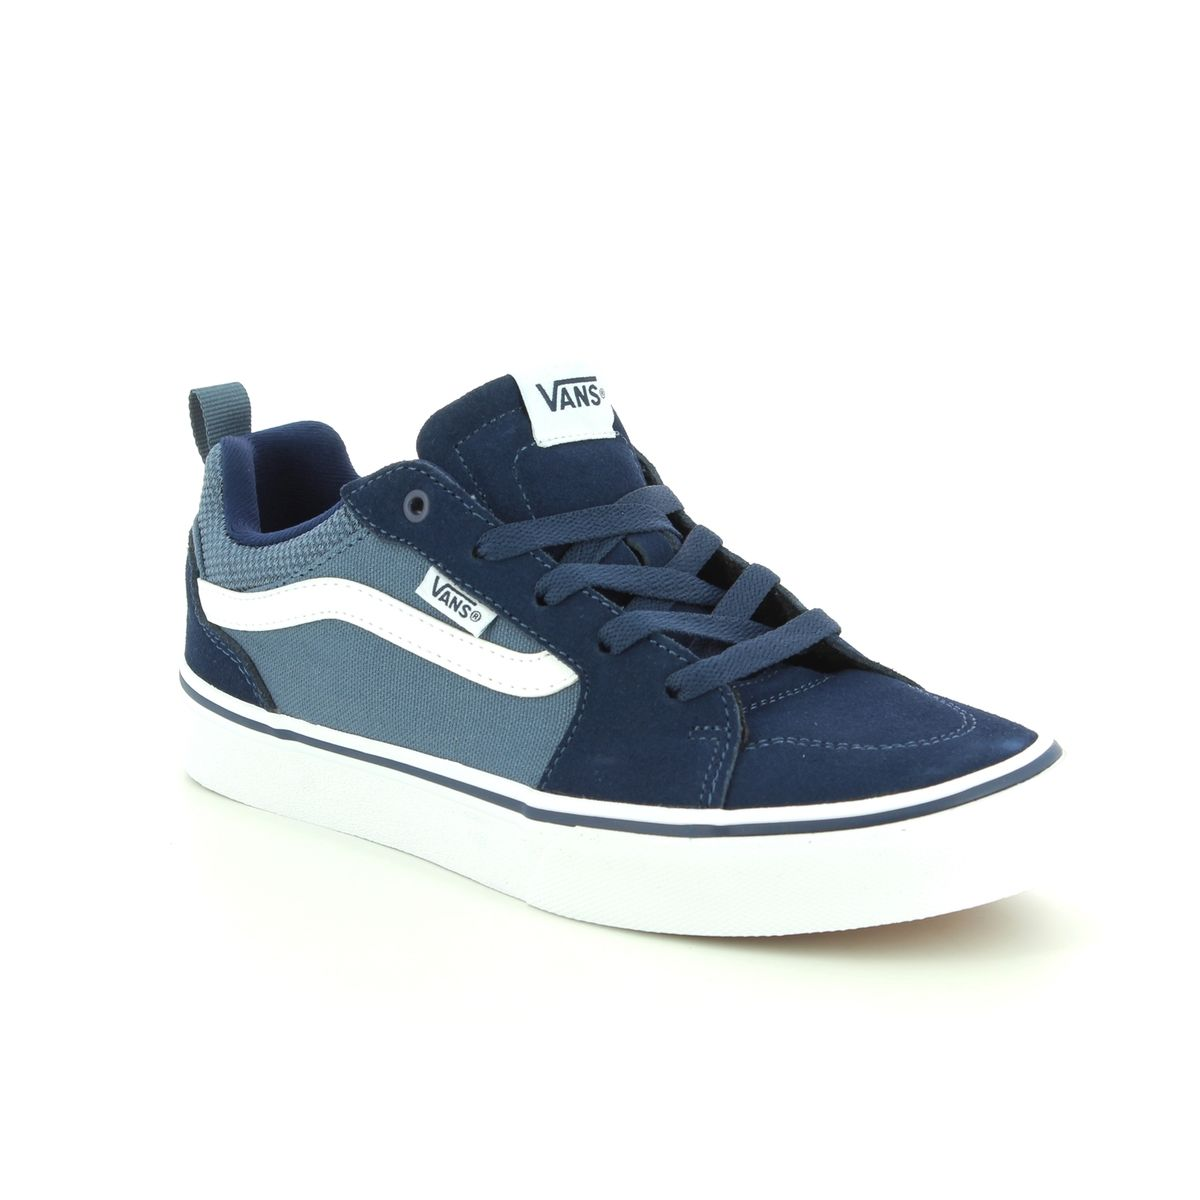 4f15dd2a89cfc6 Vans Trainers - Navy multi - VA3MVPT2L 70 FILMORE YOUTH